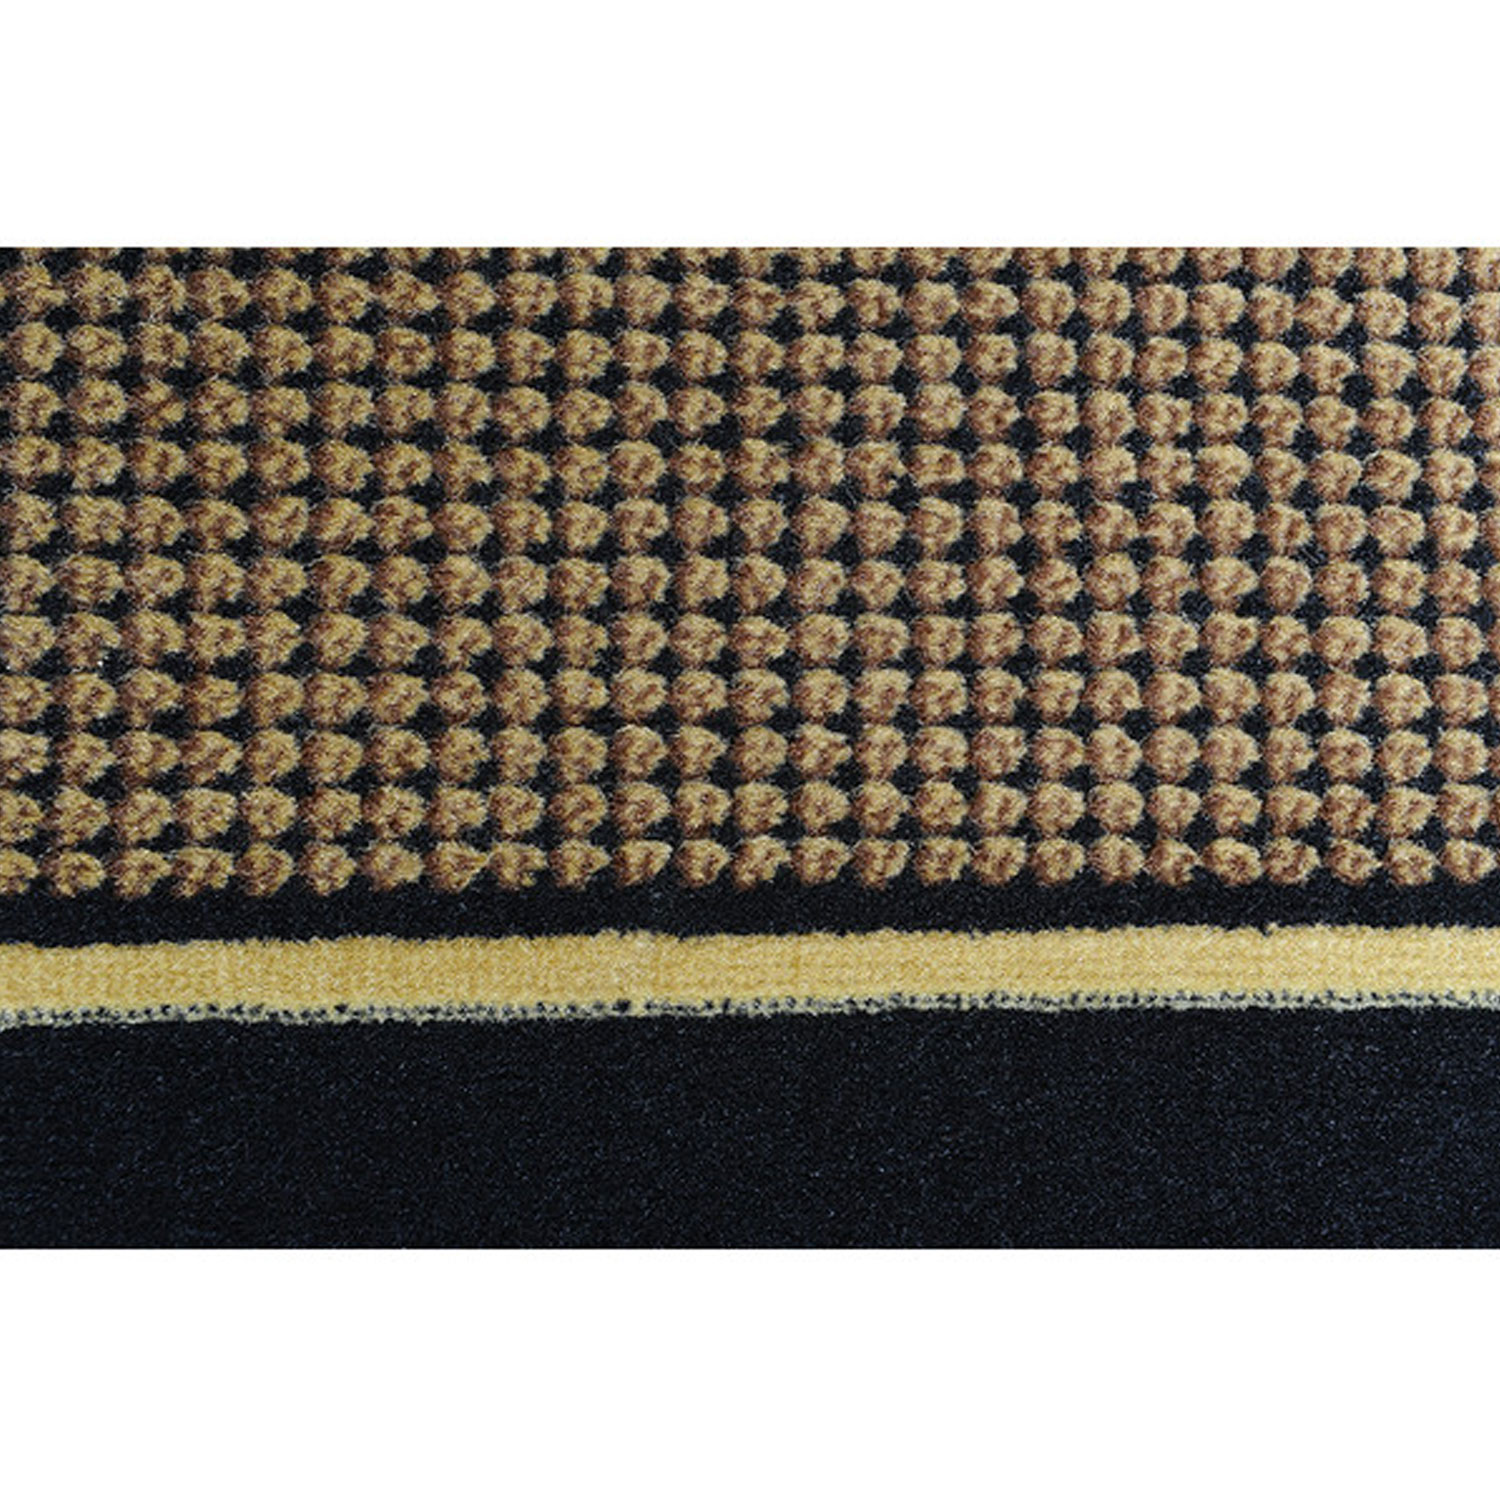 Catalina Black Border Area Rug - 4469-450